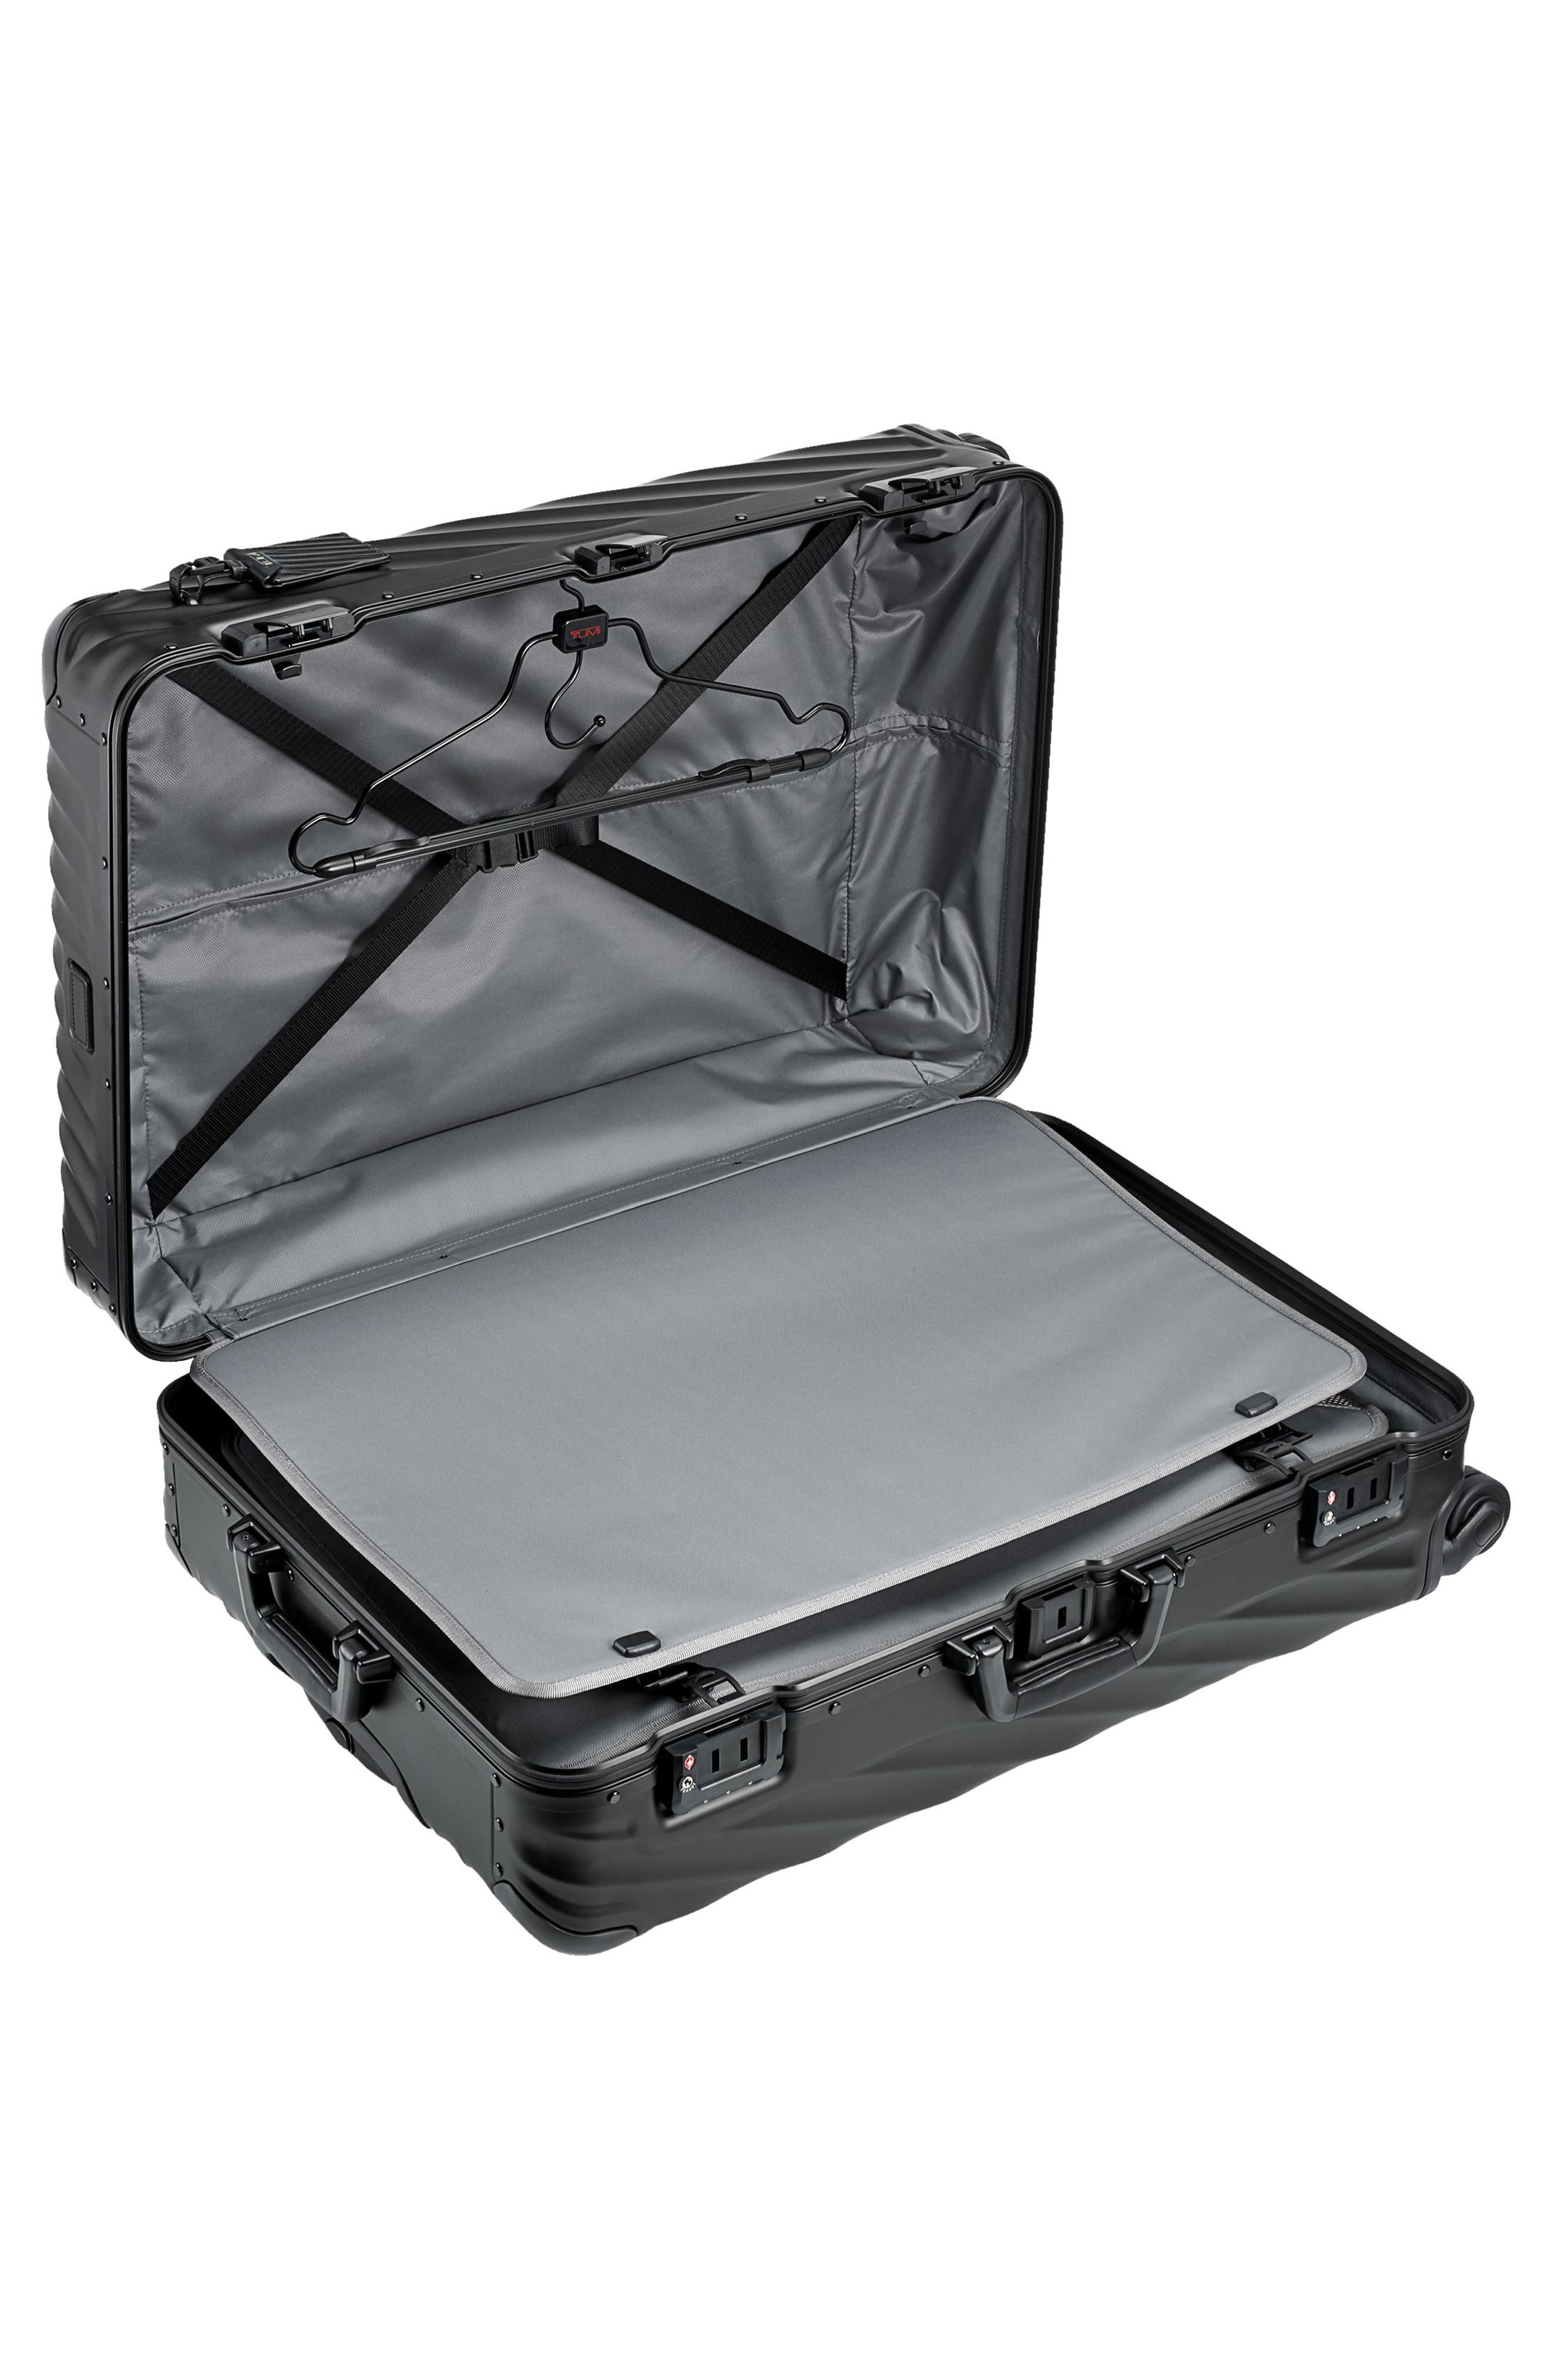 19 Degree 31-Inch Extended Trip Wheeled Aluminum Packing Case,                             Alternate thumbnail 2, color,                             MATTE BLACK